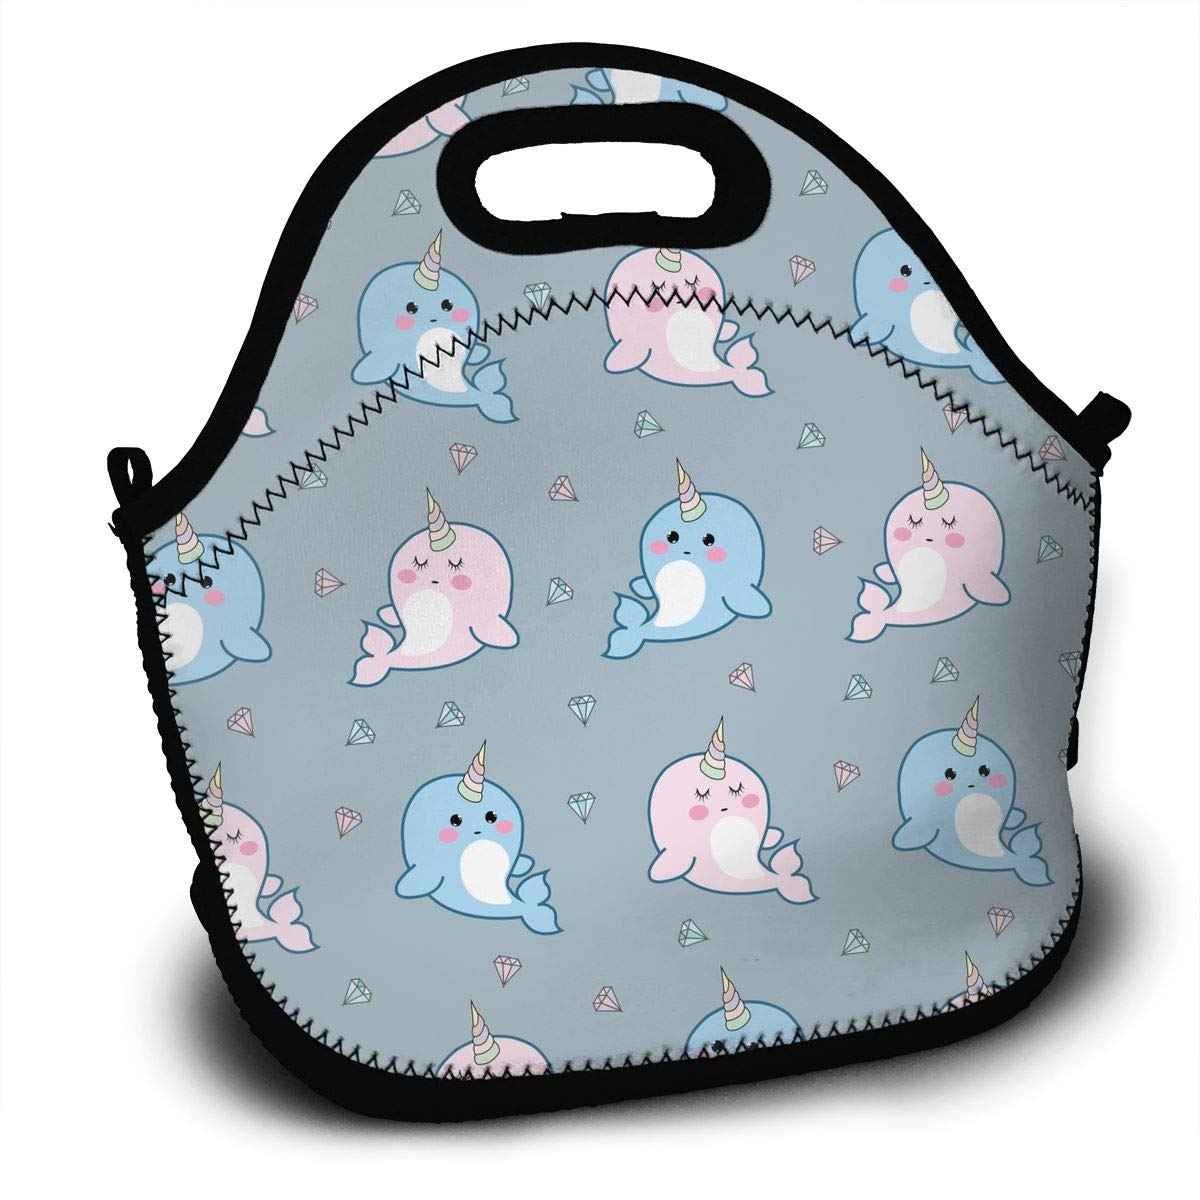 690e095ca9c0 Amazon.com - YyTiin Funny Whales Portable Carry Insulated Lunch Bag ...